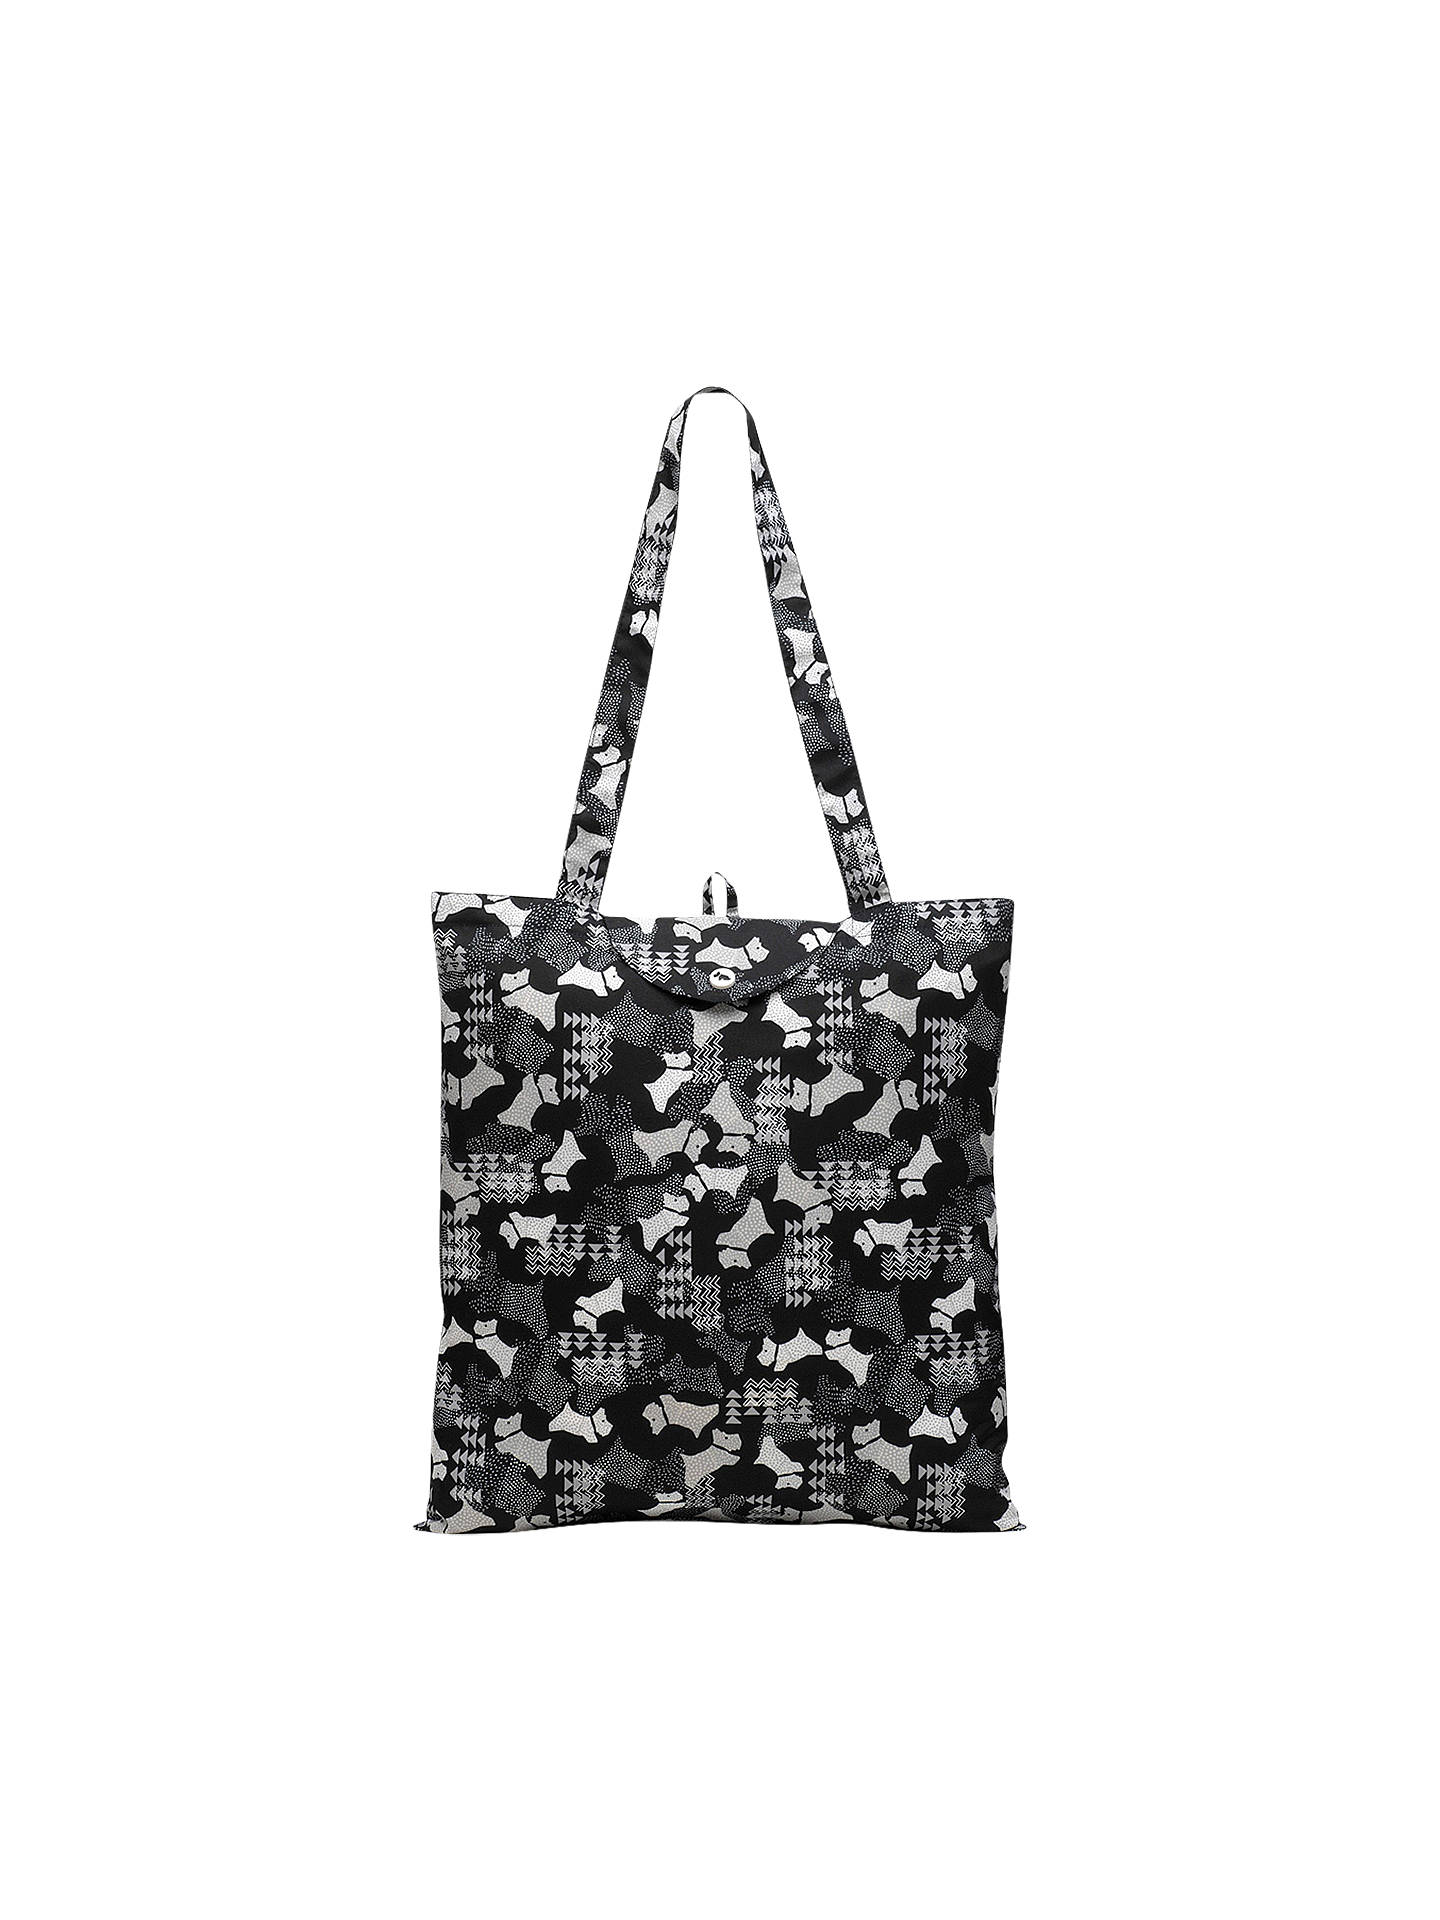 BuyRadley Dog Foldaway Tote Bag, Black Online at johnlewis.com